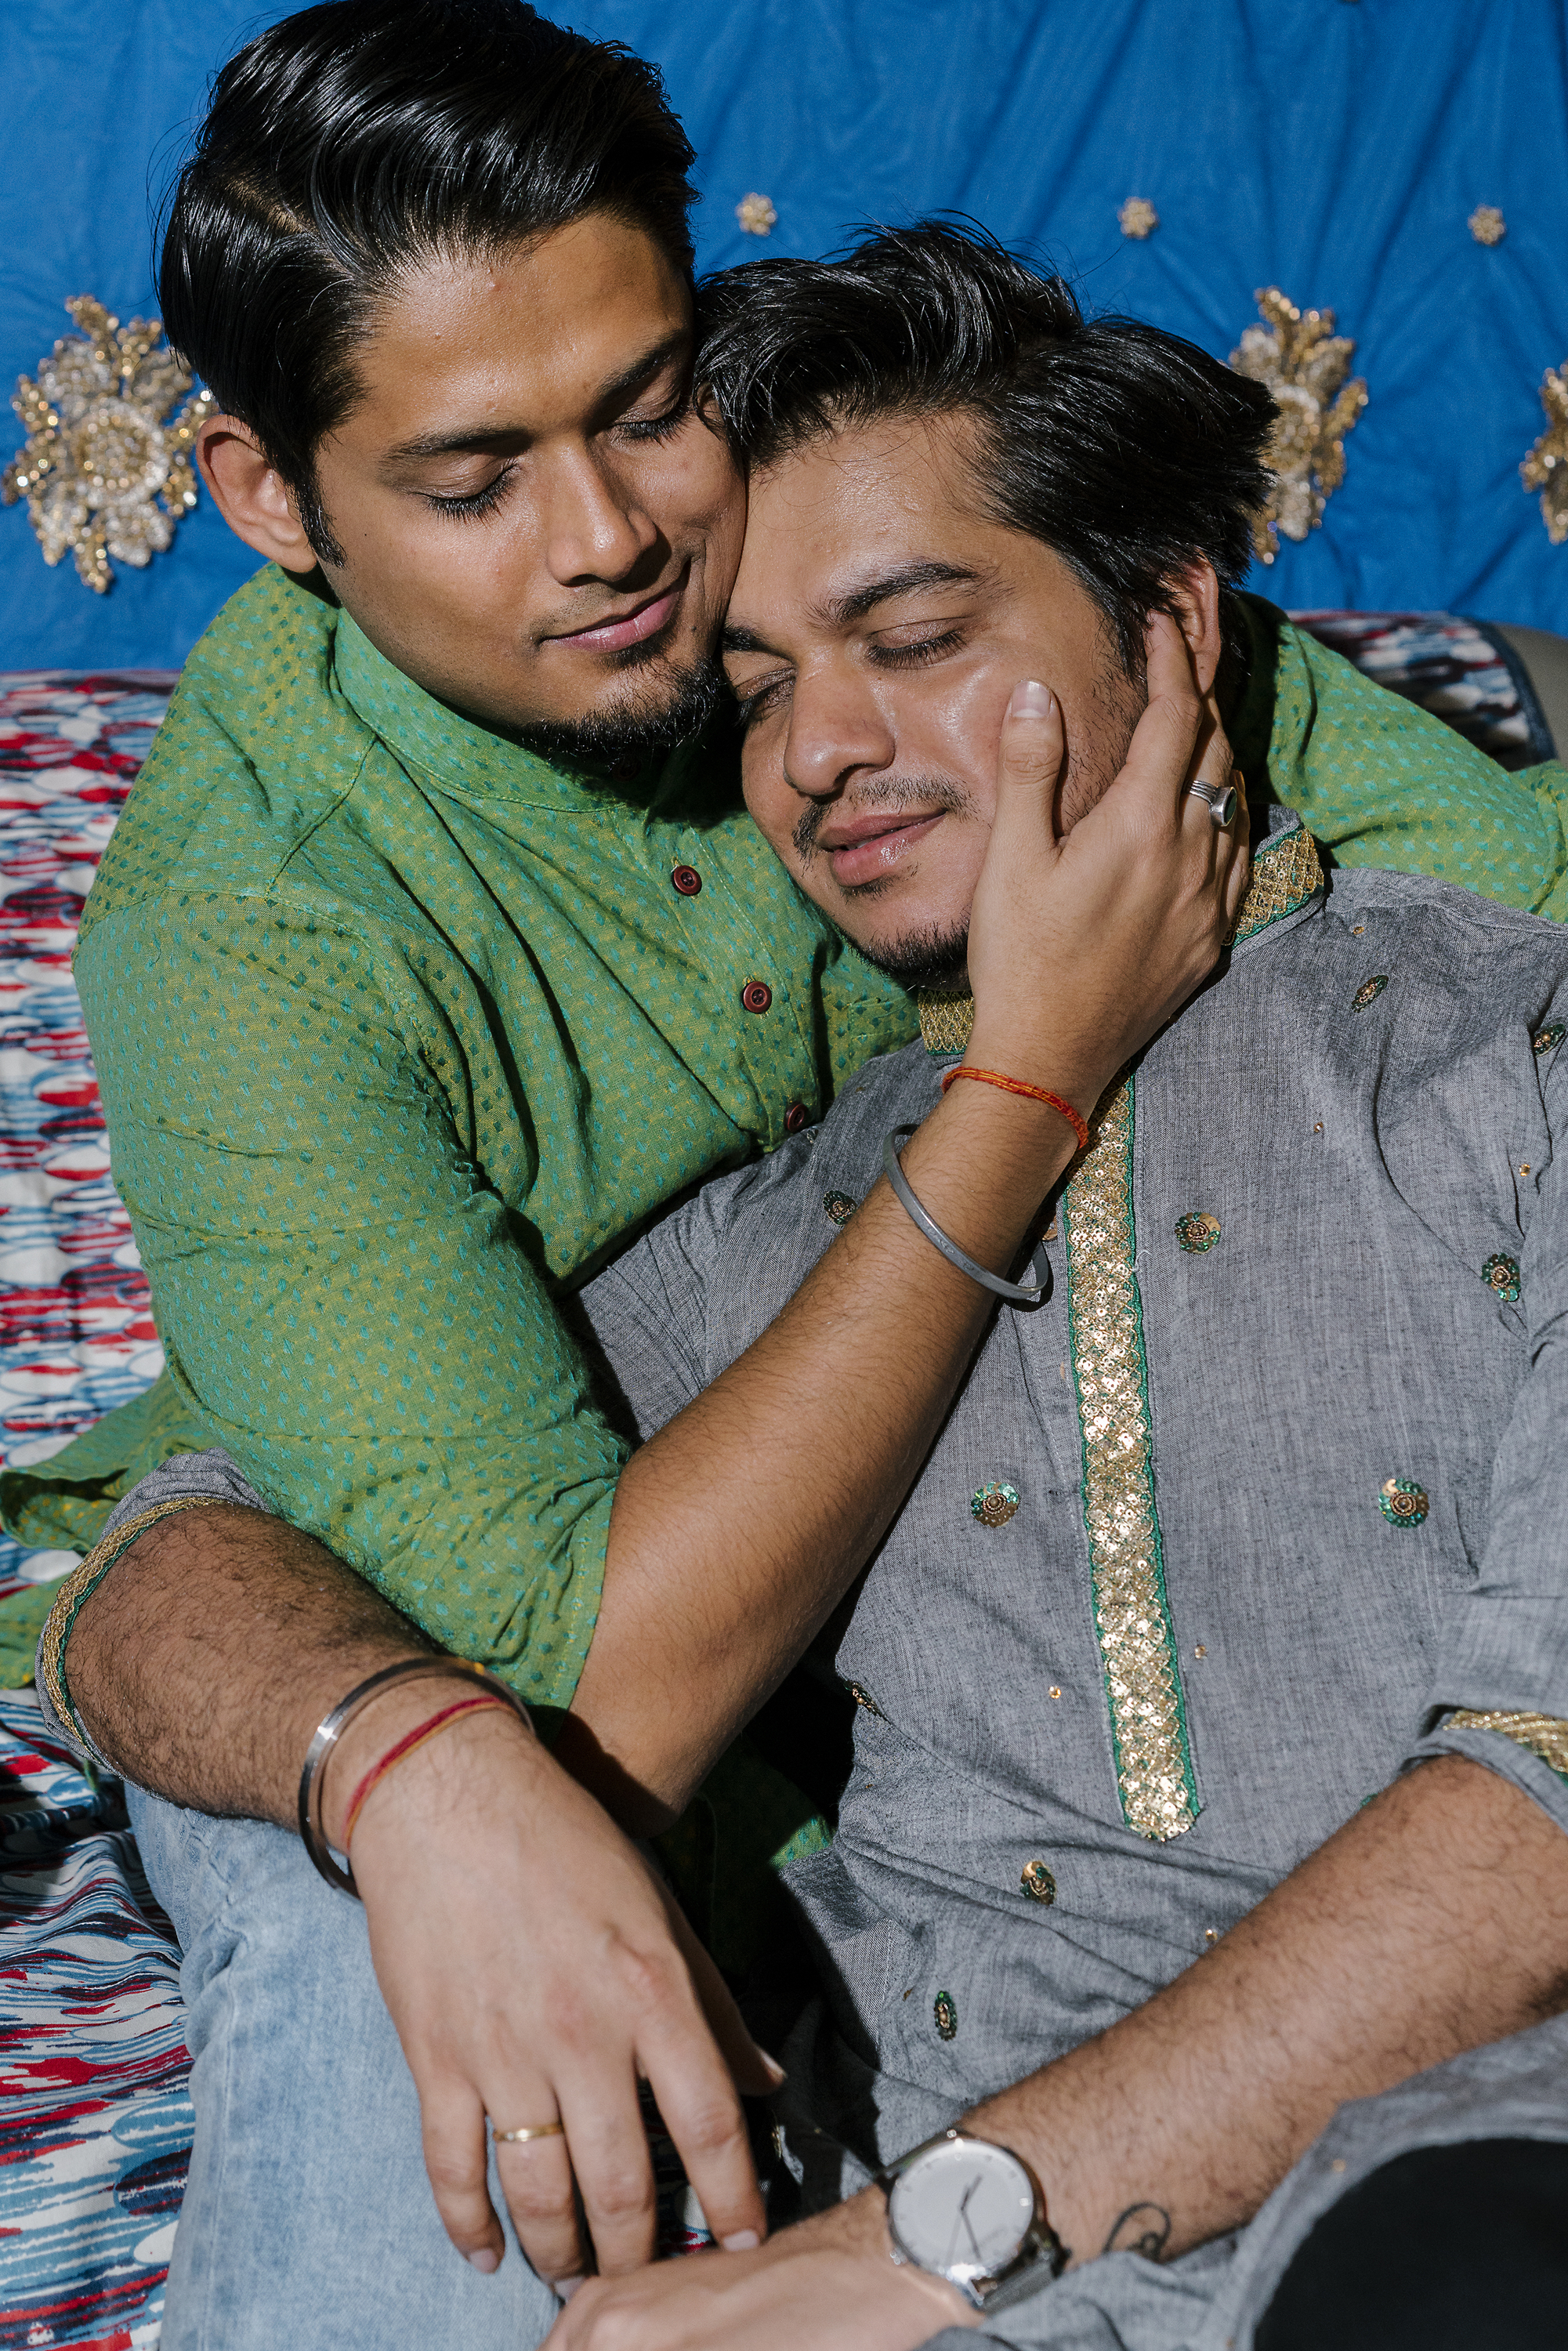 Inder Vhatwar poses for a portrait with his partner, Ashish Srivastava, in the home the two share in Mumbai. Vhatwar is a prominent gay activist in Mumbai. He ran D�kloset, the only gay fashion shop in the city, but was forced to close it when his landlord wouldn�t renew his lease after Section 377 was reinstated.